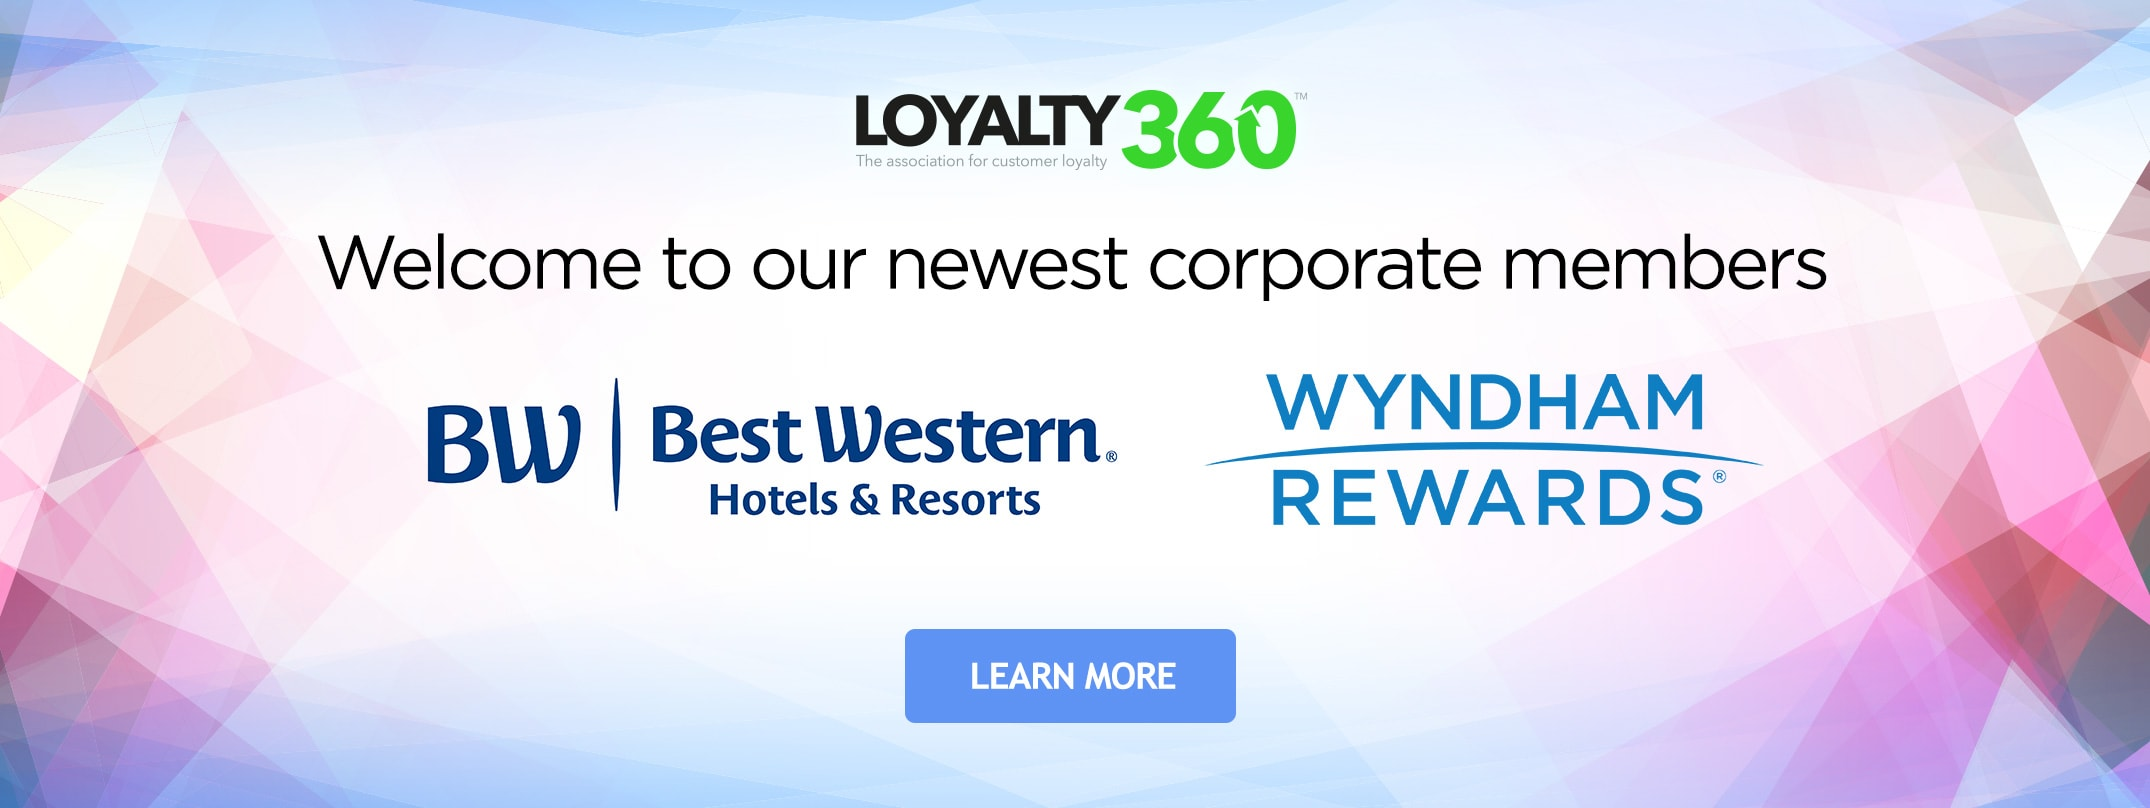 New-Member-Welcome_Wyndham-and-Best-Western